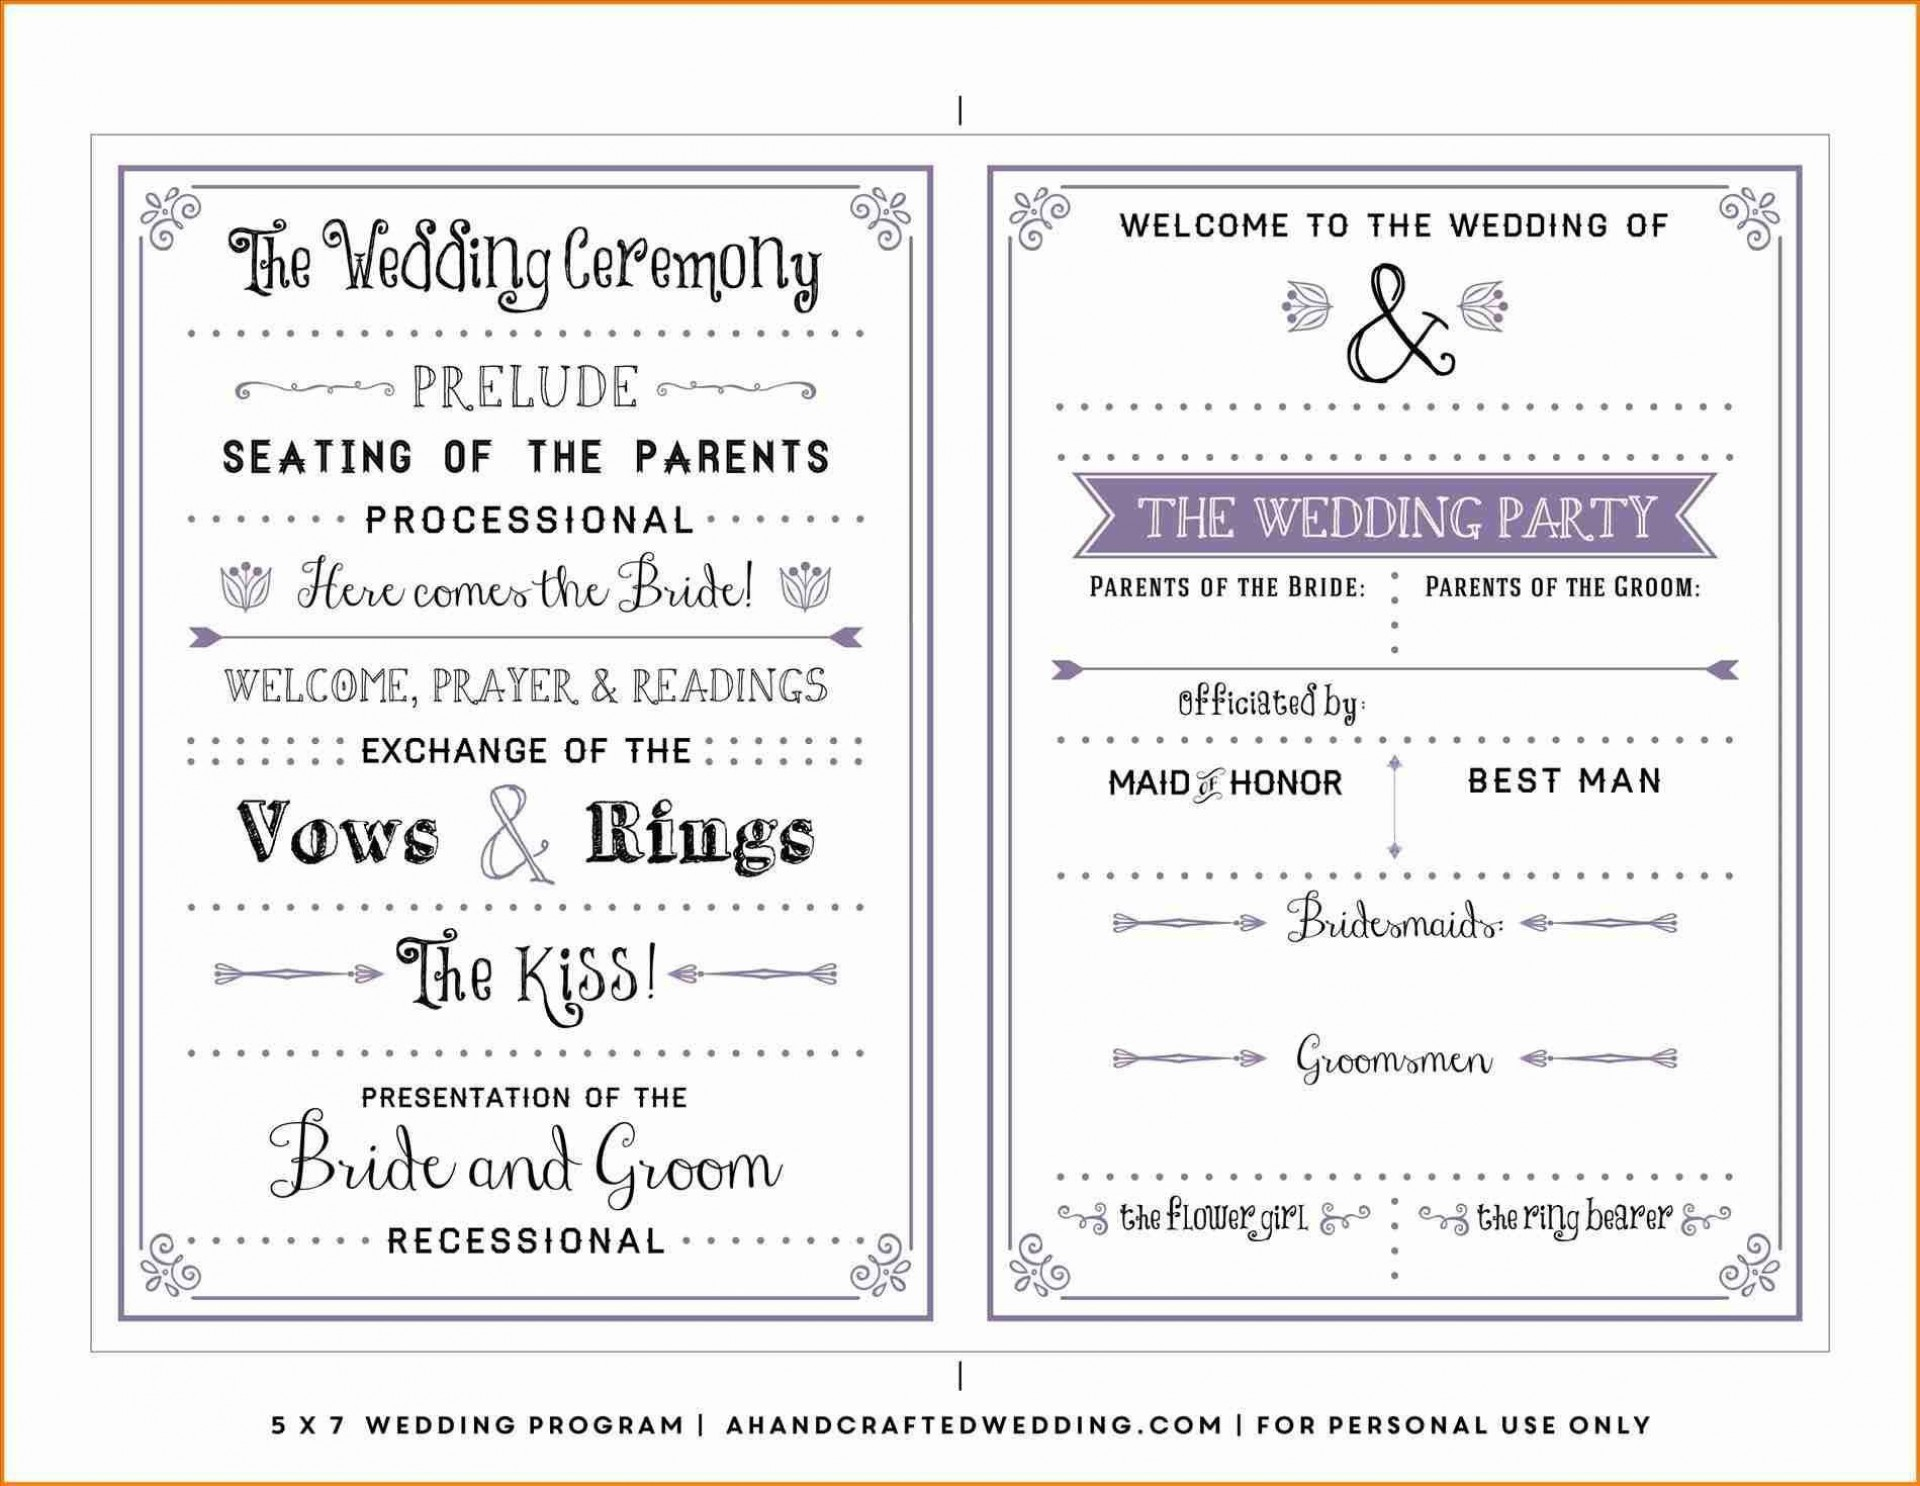 002 Incredible Wedding Template For Word Design  Free Invitation Indian Card M Program1920